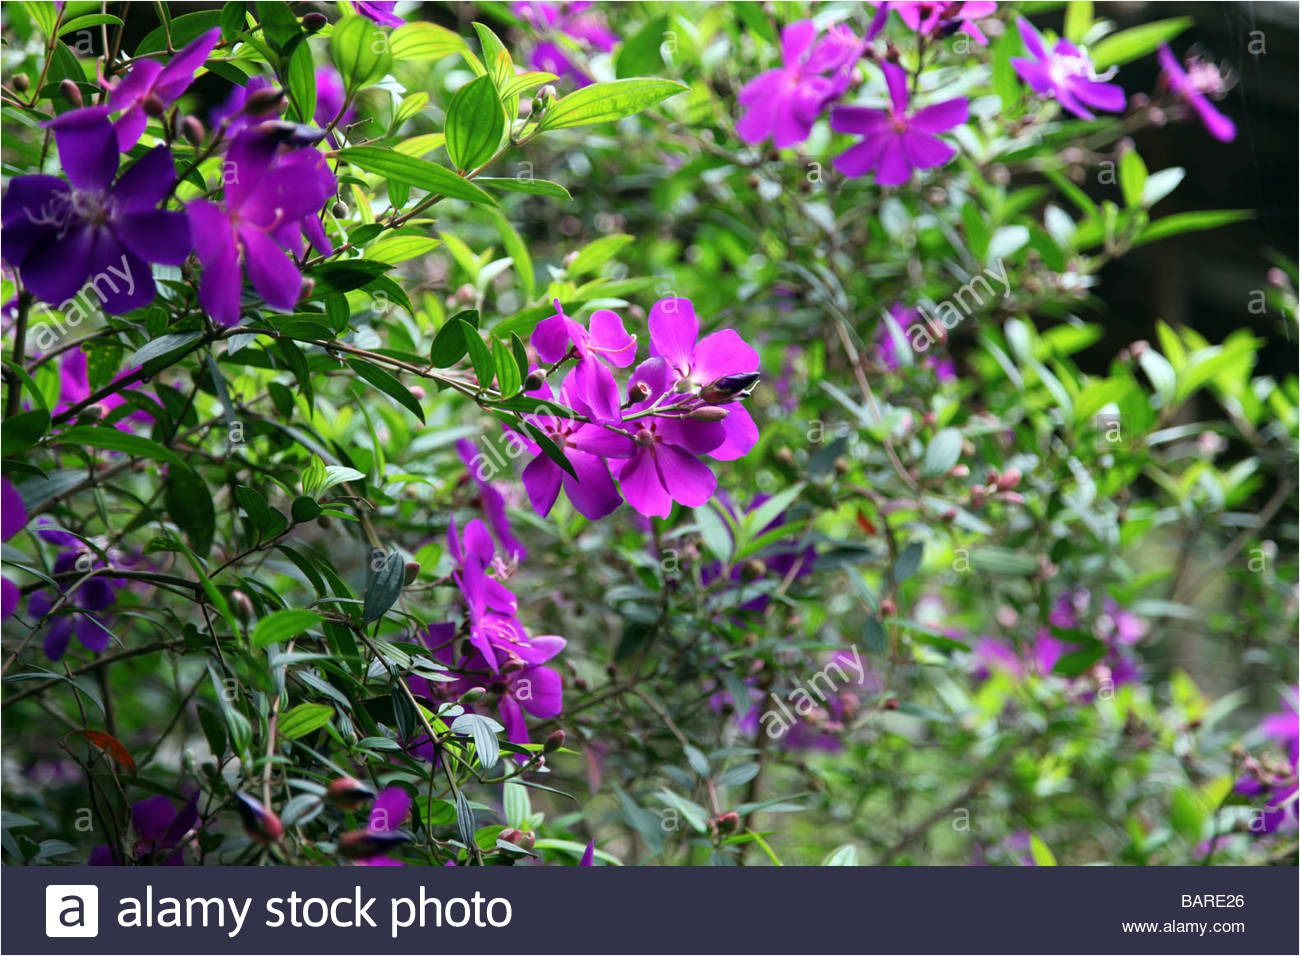 Beautifull Nature Flower Bush Bushes Flowers Pink Red In 2020 Purple Flowering Plants Purple And White Flowers Purple Flowering Bush